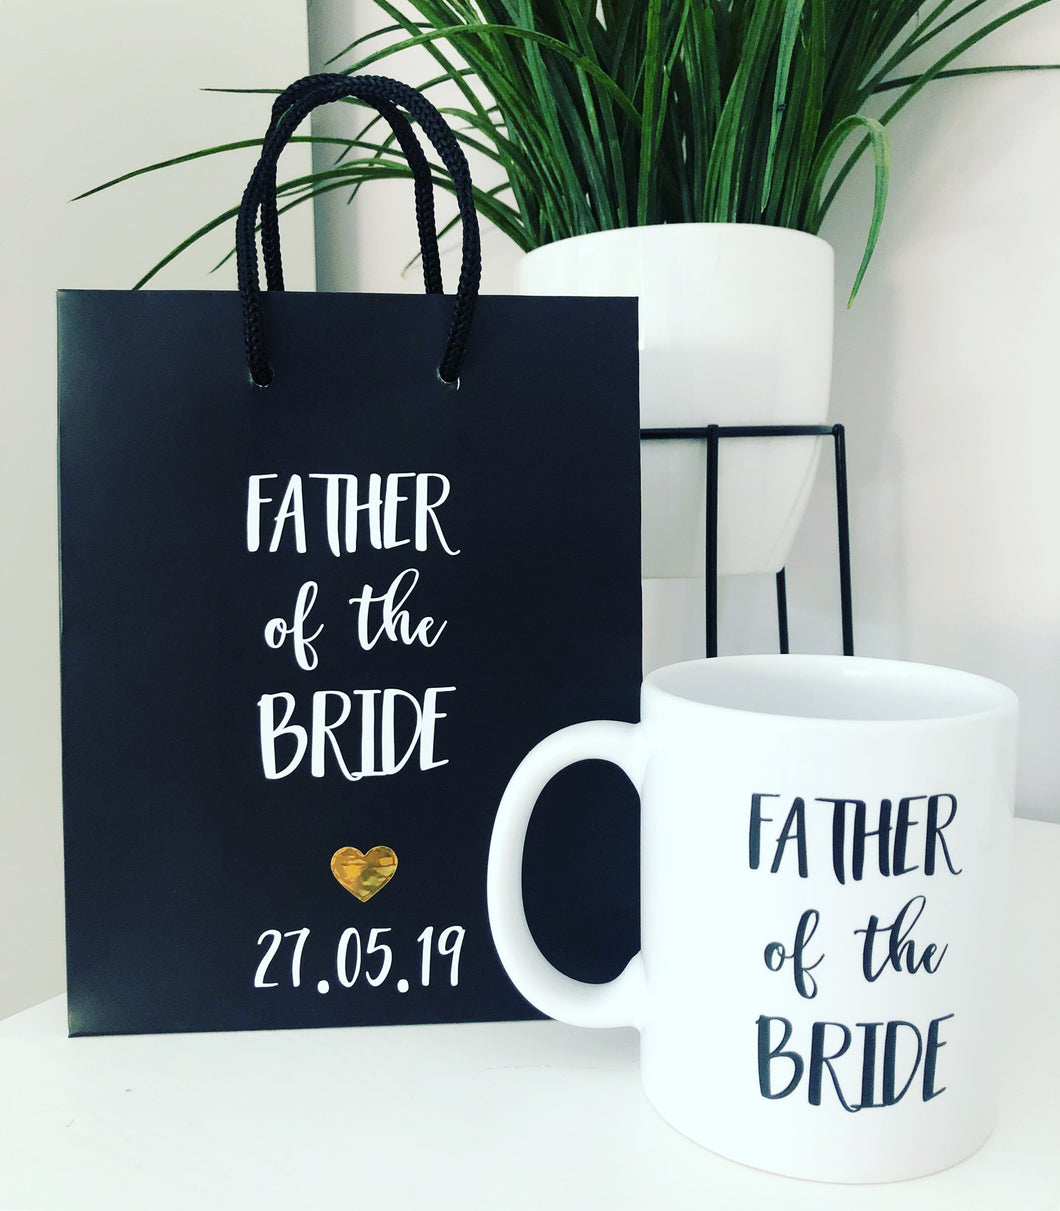 SET OF 2 - Black Matte 'Father of the Bride' Gift Bag & Mug